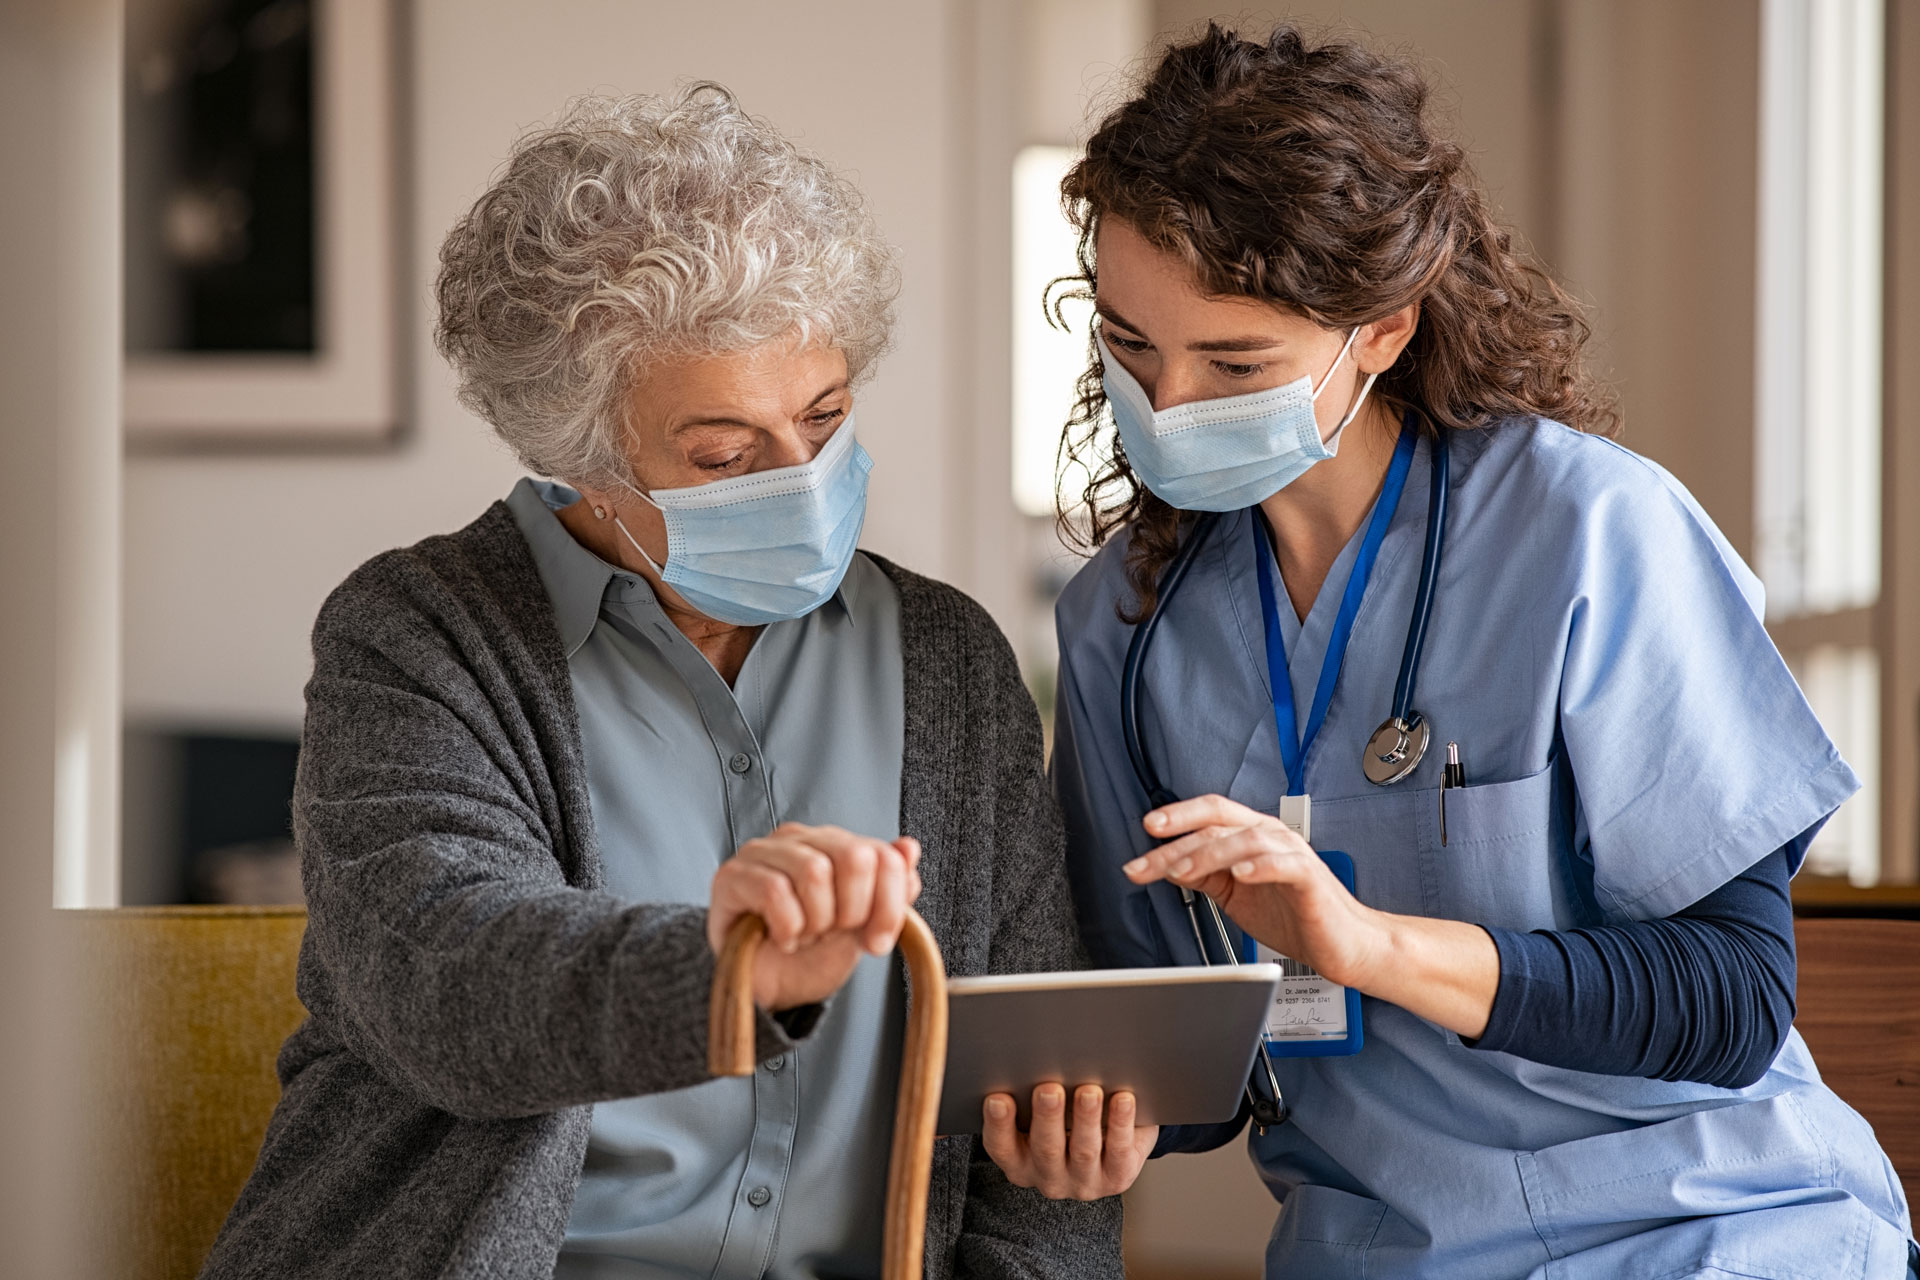 Young doctor and senior woman going through medical record on digital tablet during home visit wearing face protective mask.